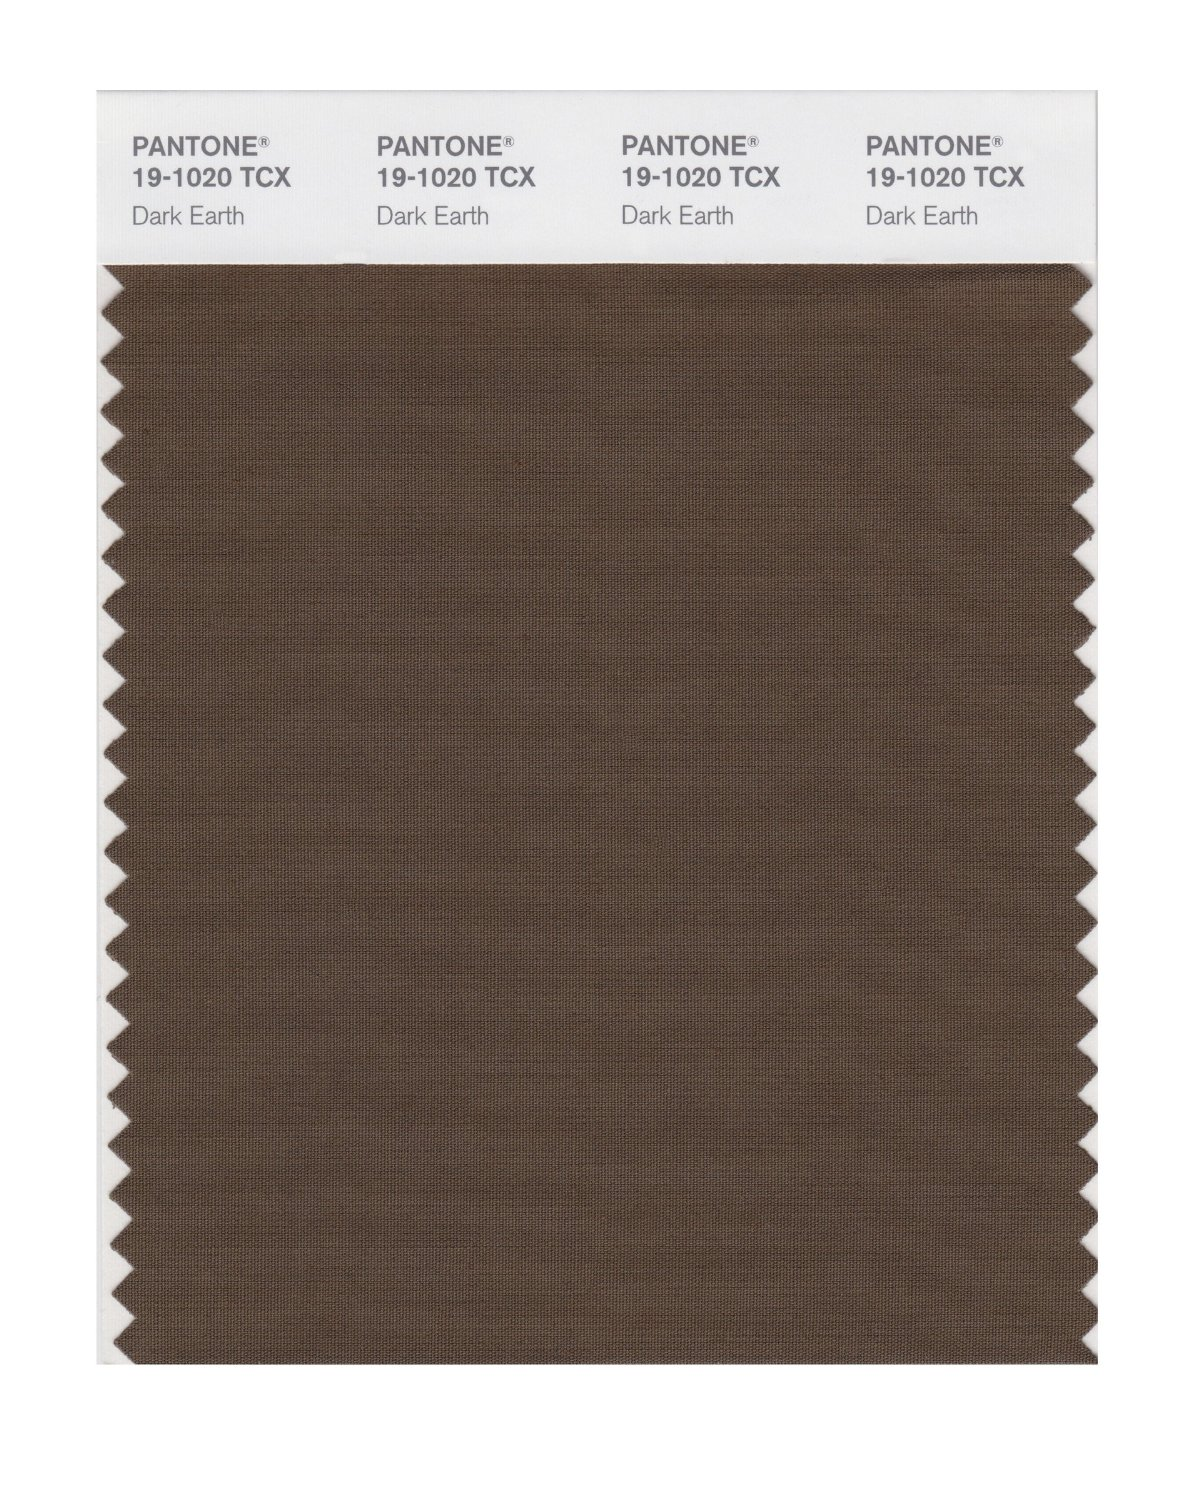 Pantone Smart Swatch 19-1020 Dark Earth